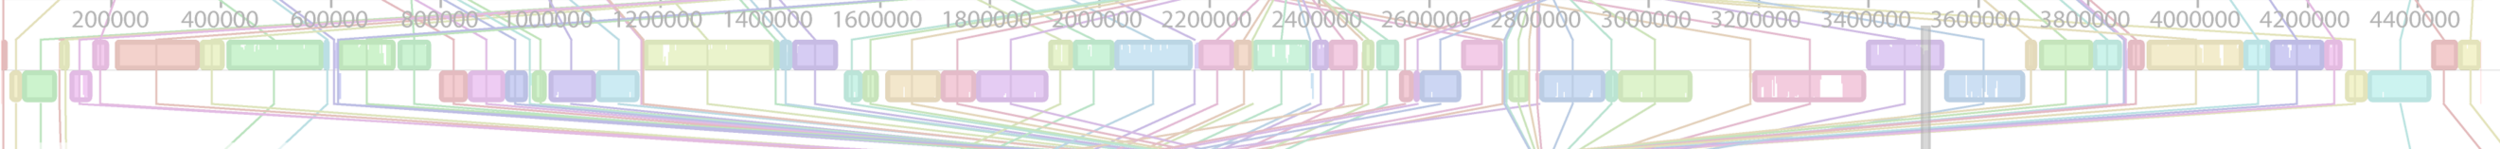 genome_alignment_banner_30pct.png